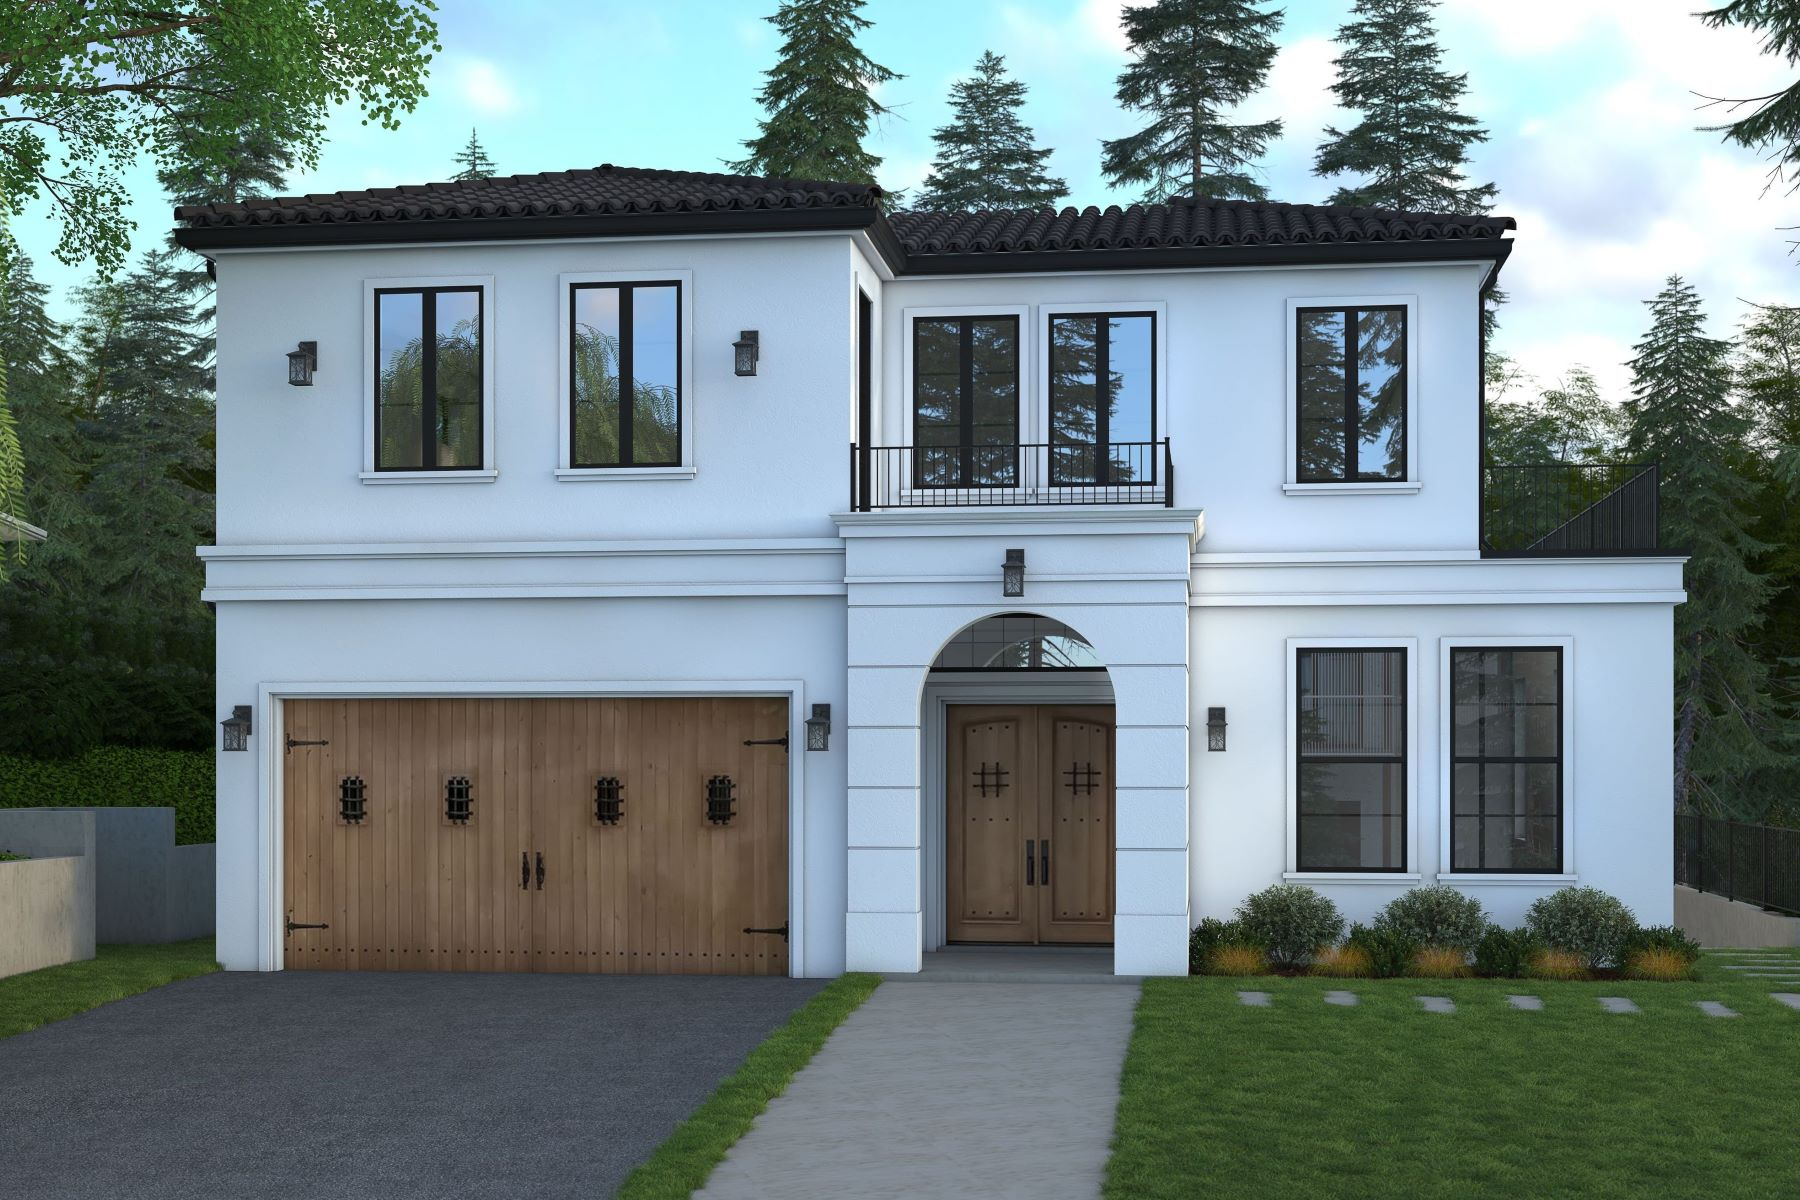 Single Family Homes for Sale at 11030 SE 27th Place, Bellevue, WA 98004 Bellevue, Washington 98004 United States